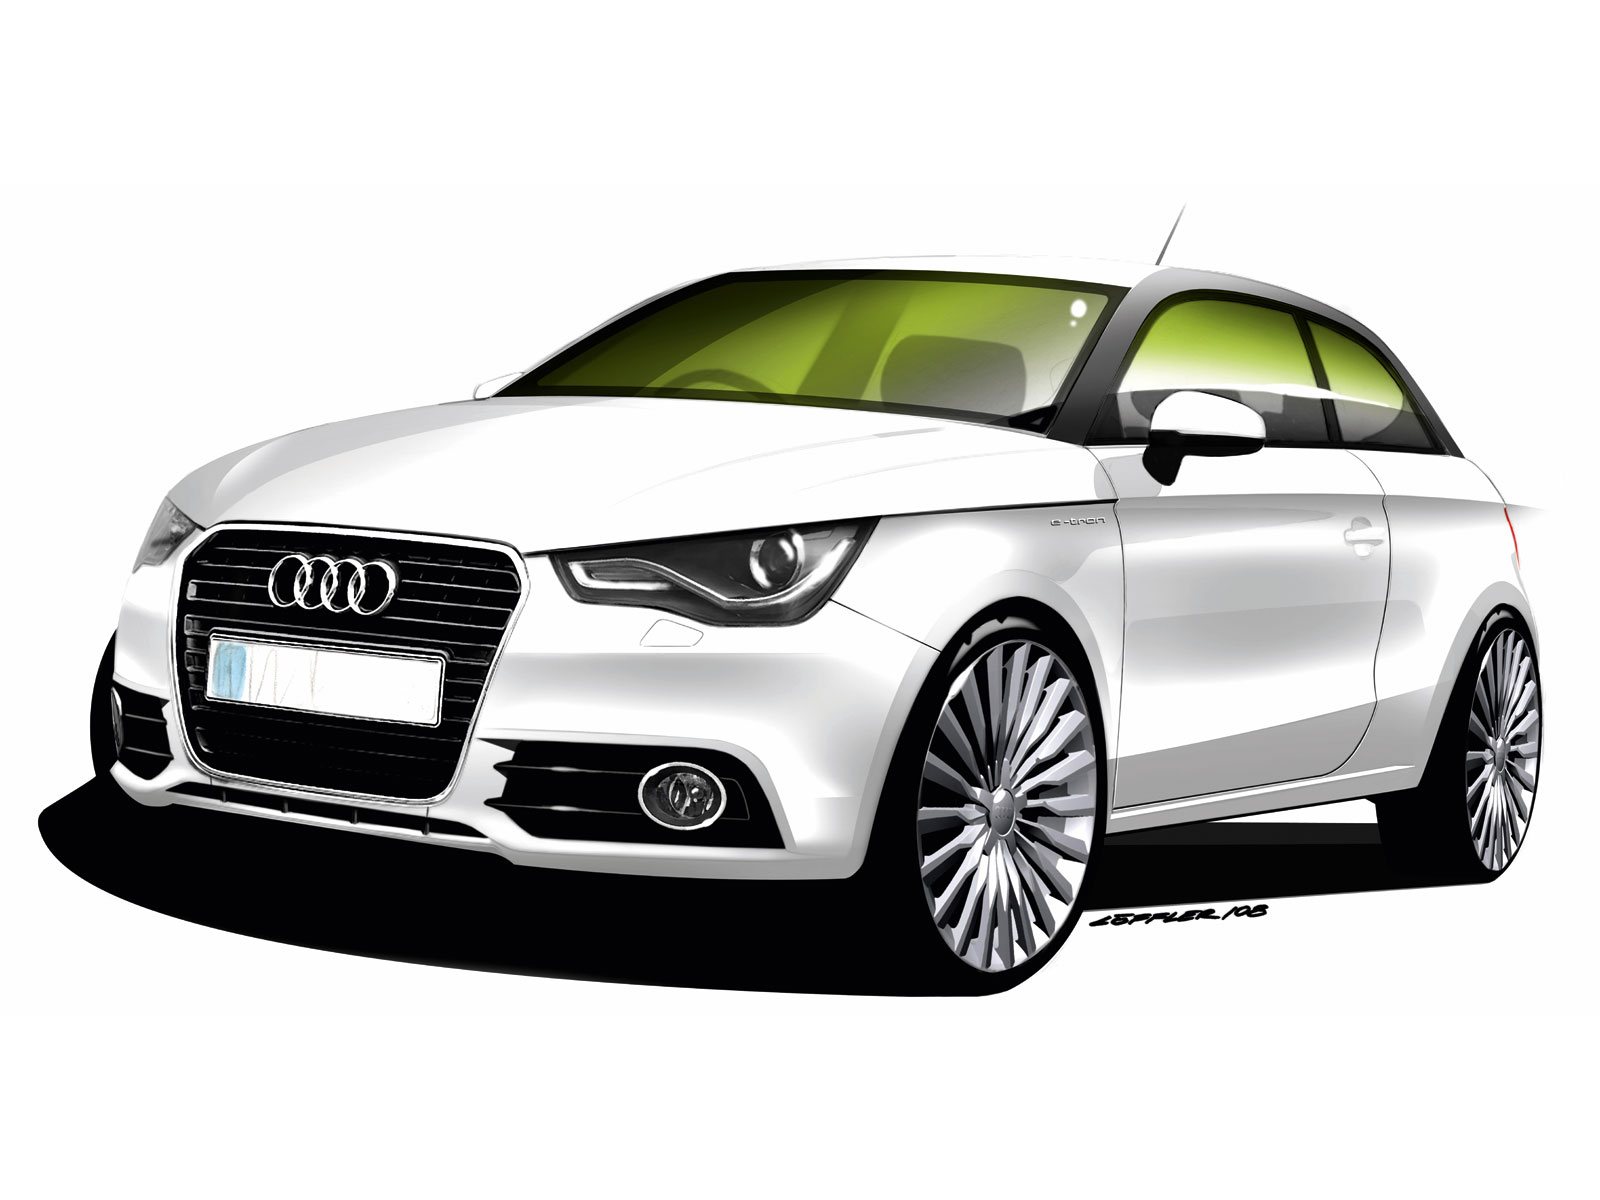 designing cars audi a1 e tron concept. Black Bedroom Furniture Sets. Home Design Ideas